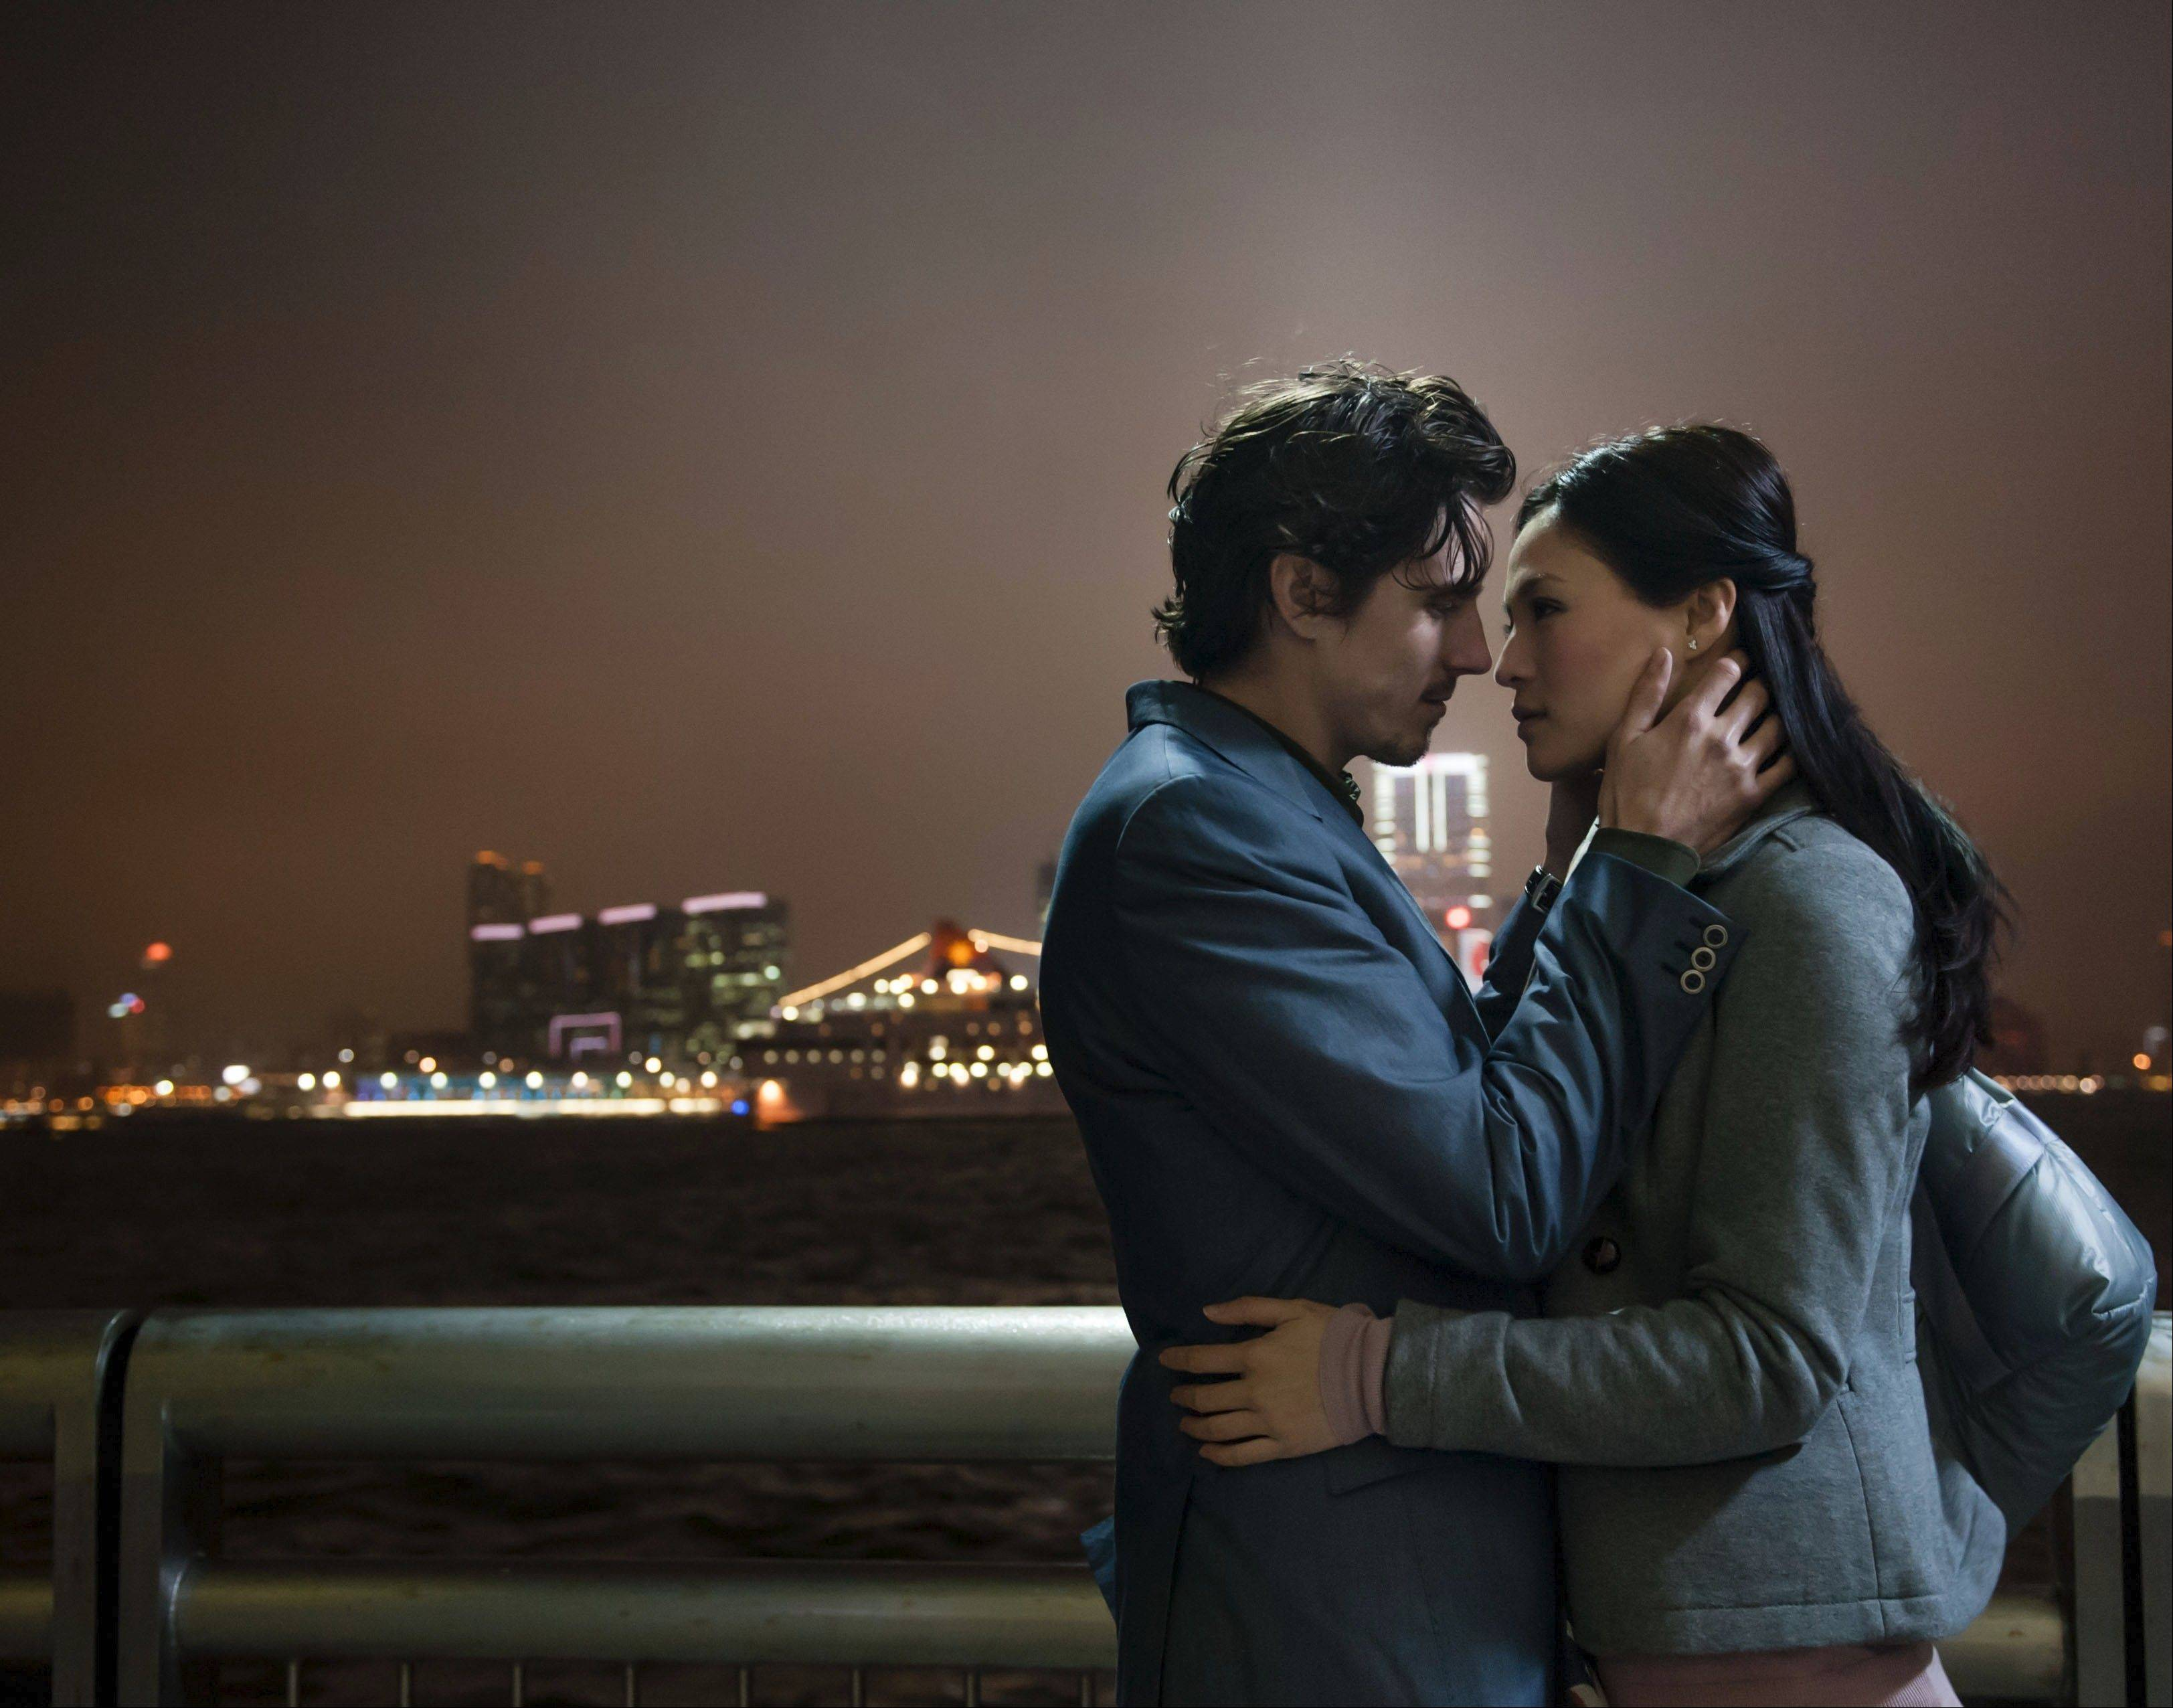 Sean Faris and Grace Huang play lovers in the superbly photographed romance